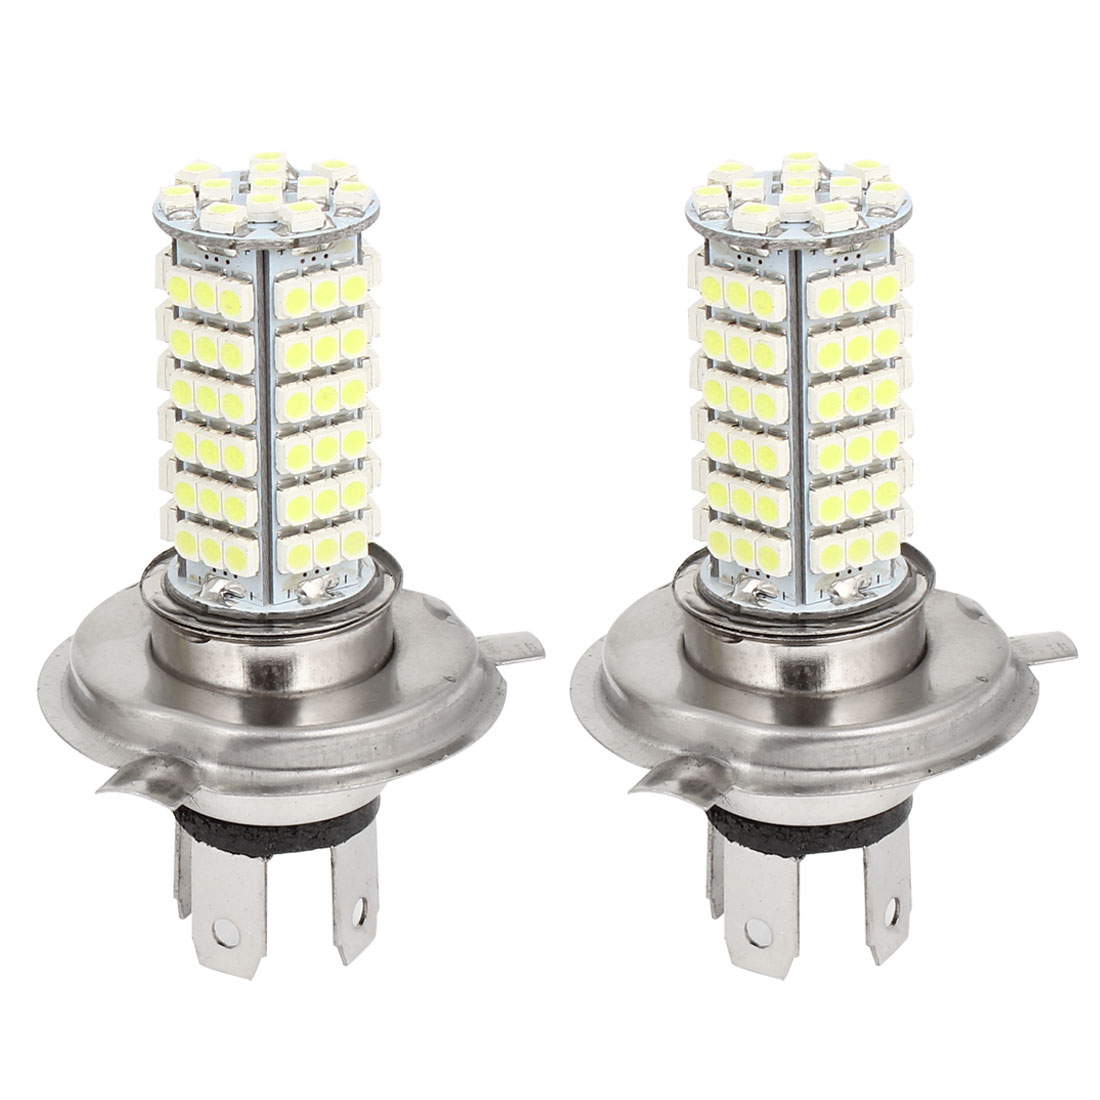 DC 12V Car Auto White H4 3528 1210 102 LED Foglight Head Light Lamp 2 Pcs